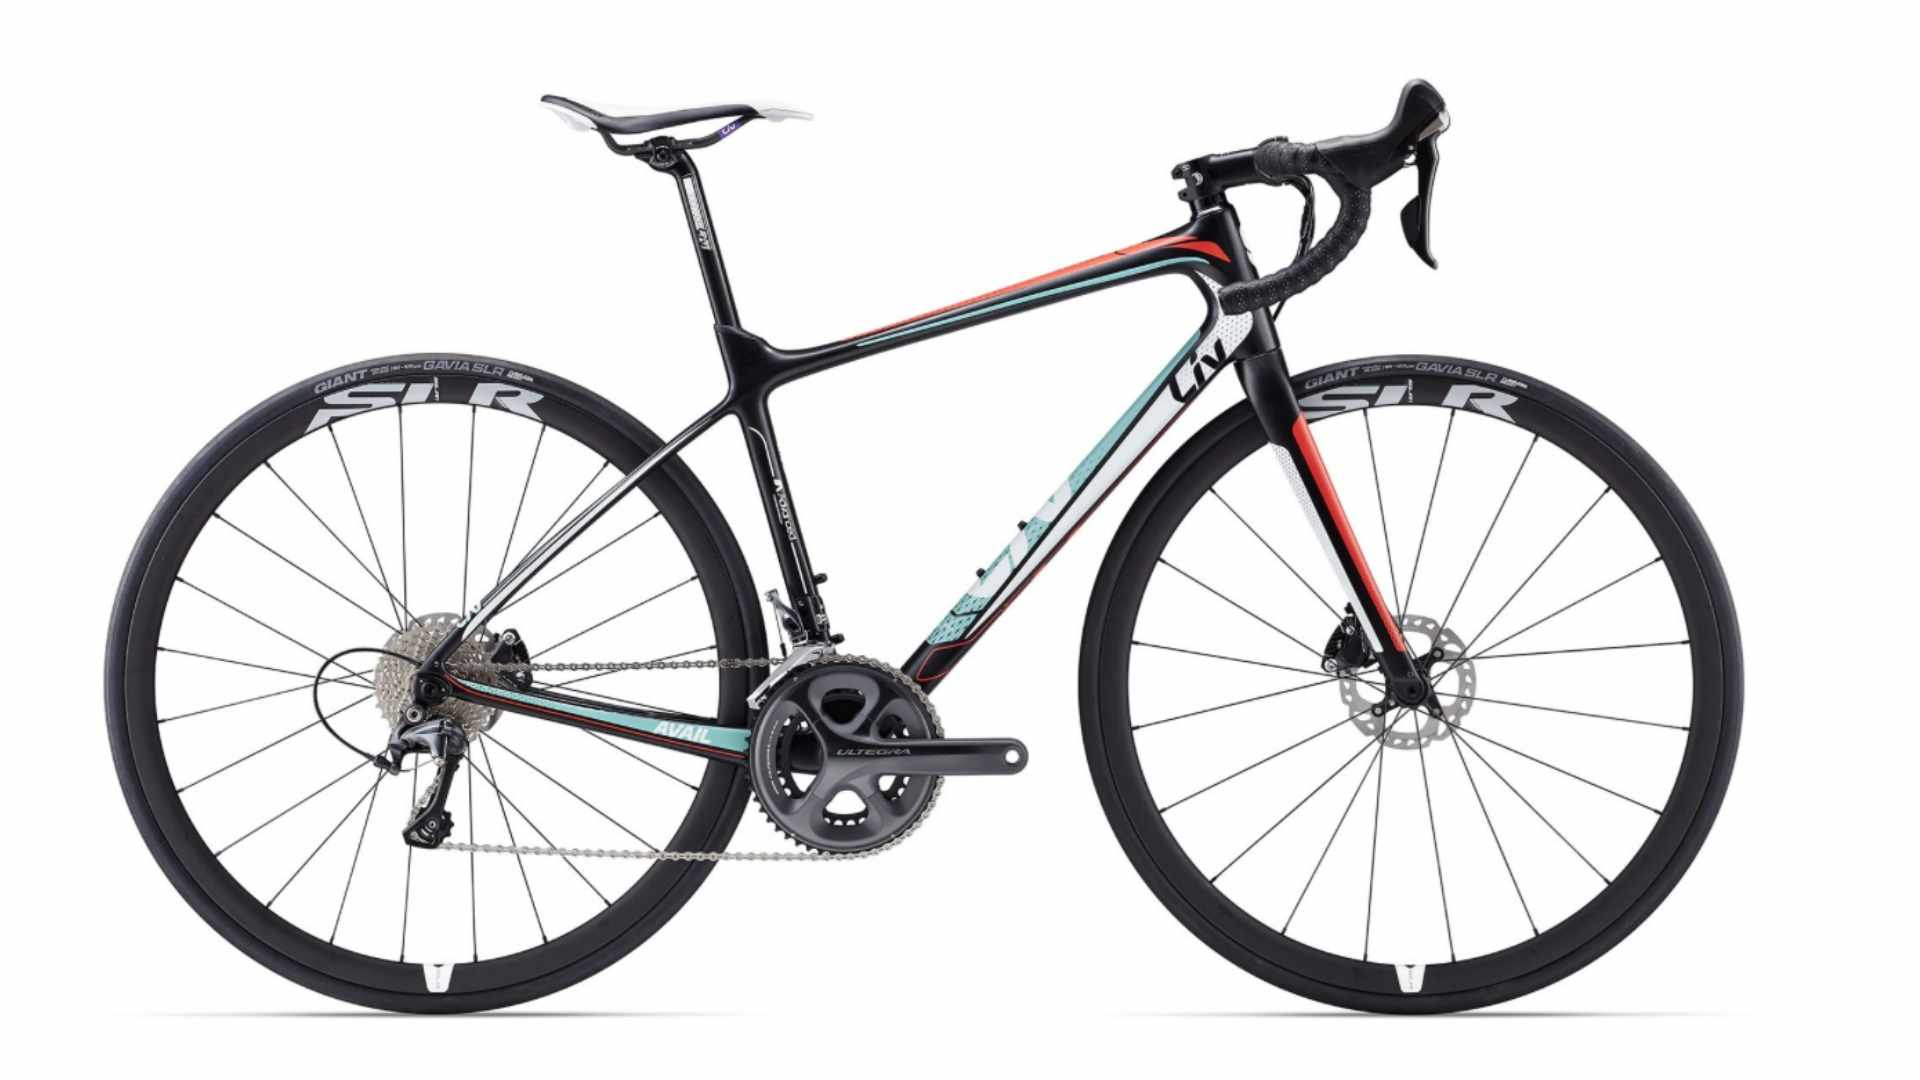 The endurance-focussed Liv Avail is one of the most popular bikes in the line up